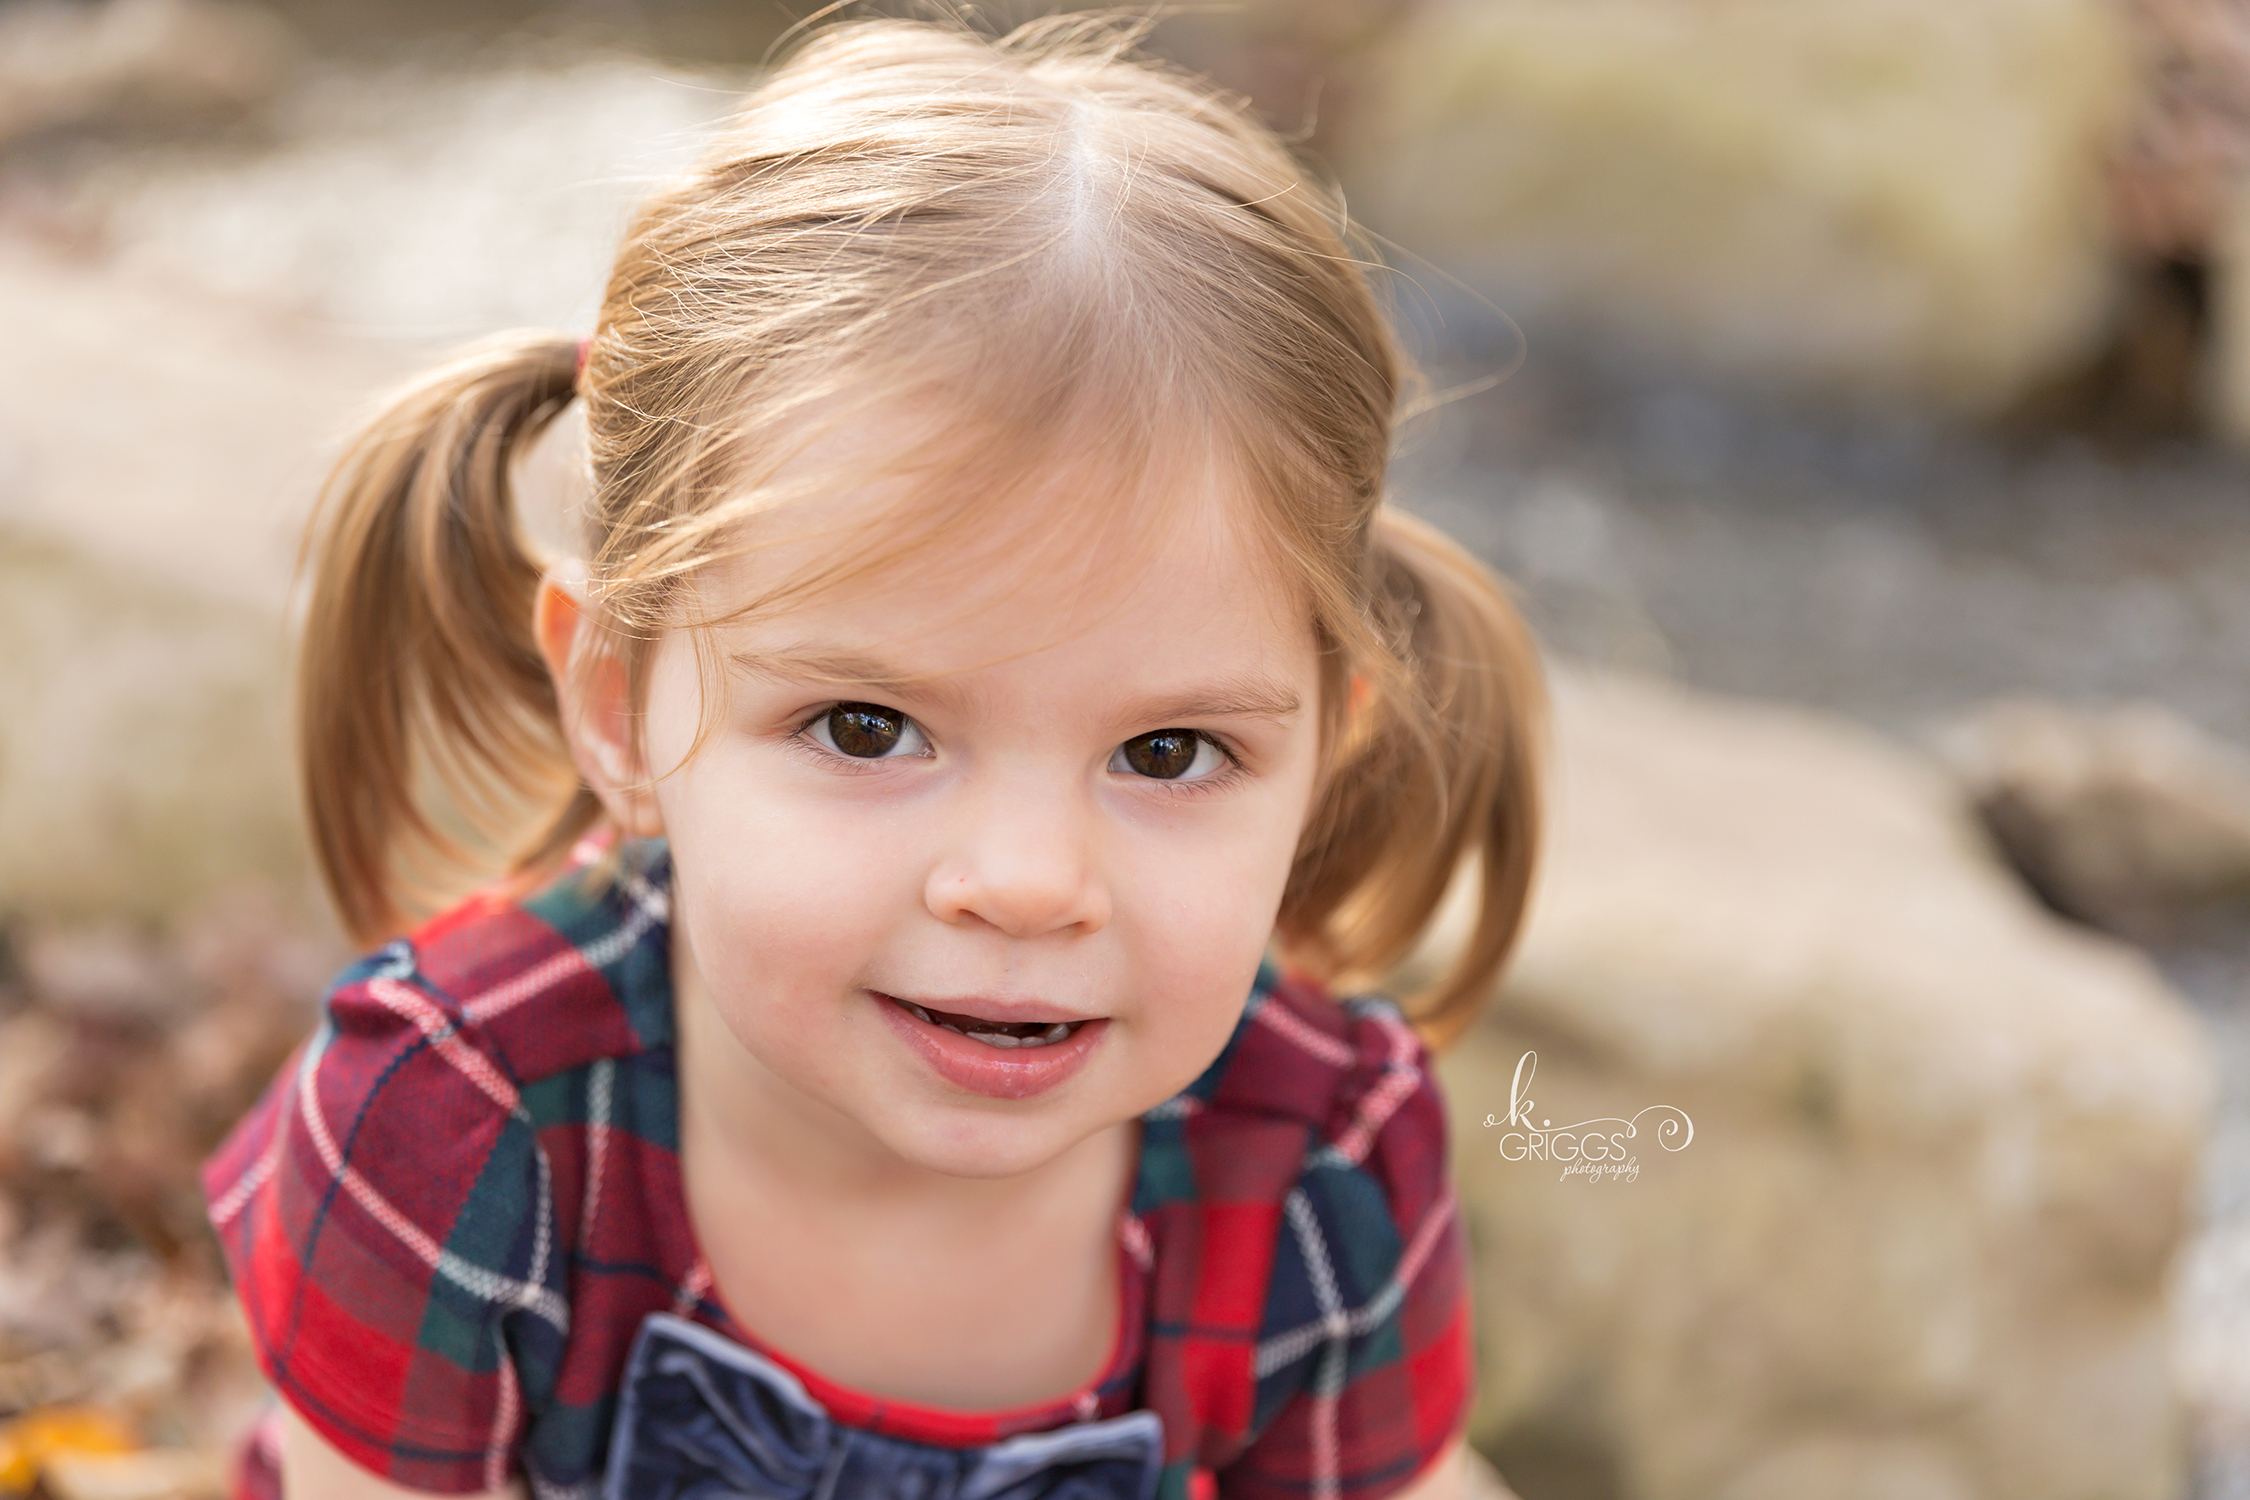 Young girl looking at camera smiling | St. Louis Photographer